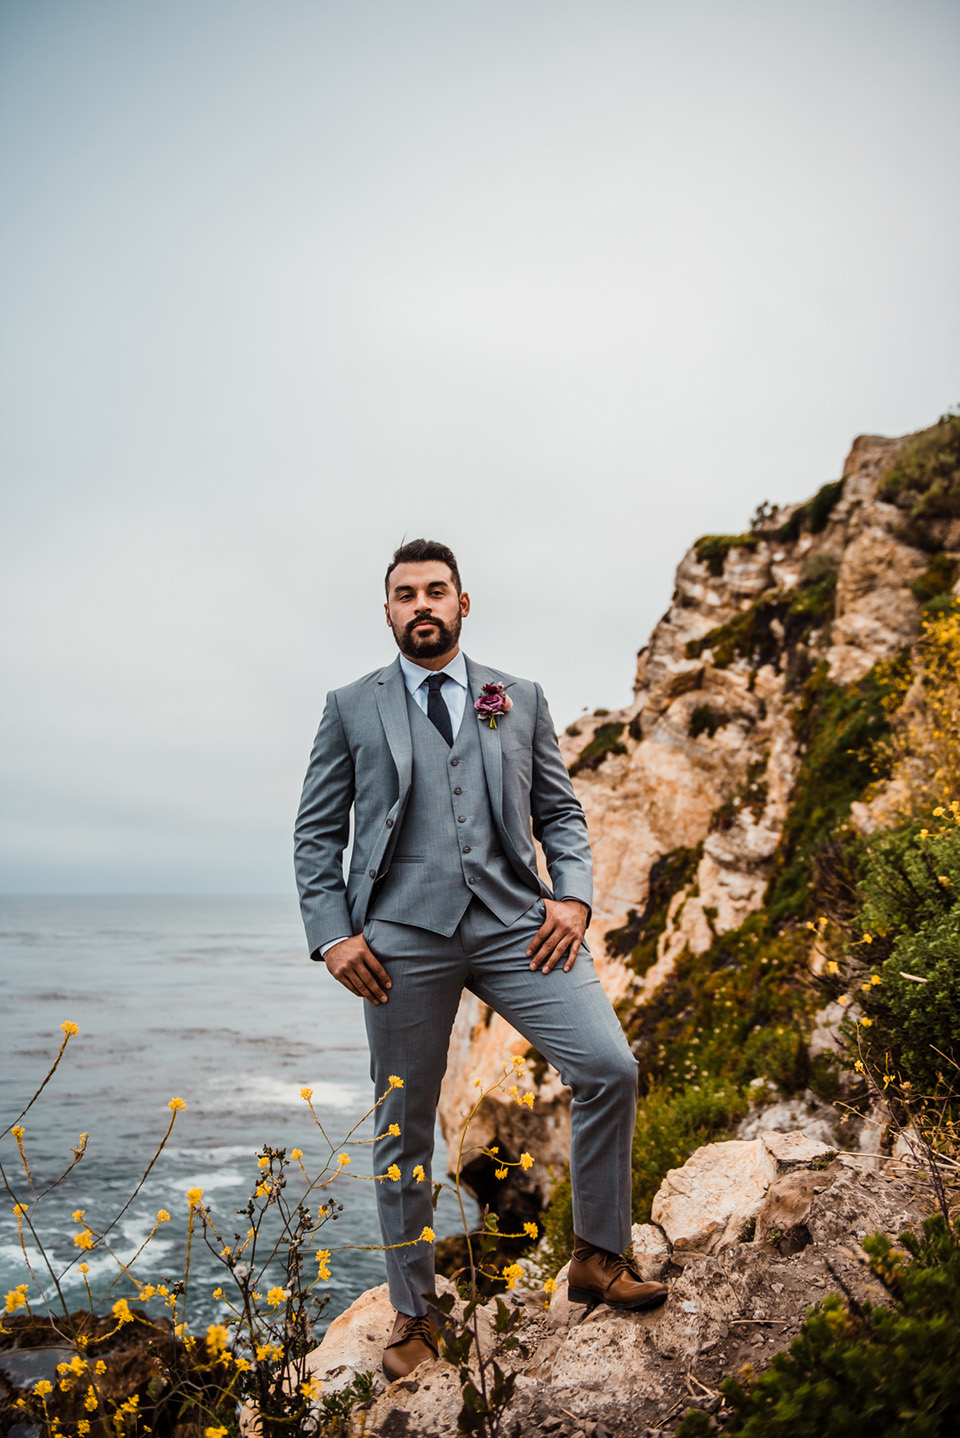 avila-beach-elopement-shoot-groom-wearing-a-light-blue-suit-with-a-navy-long-tie